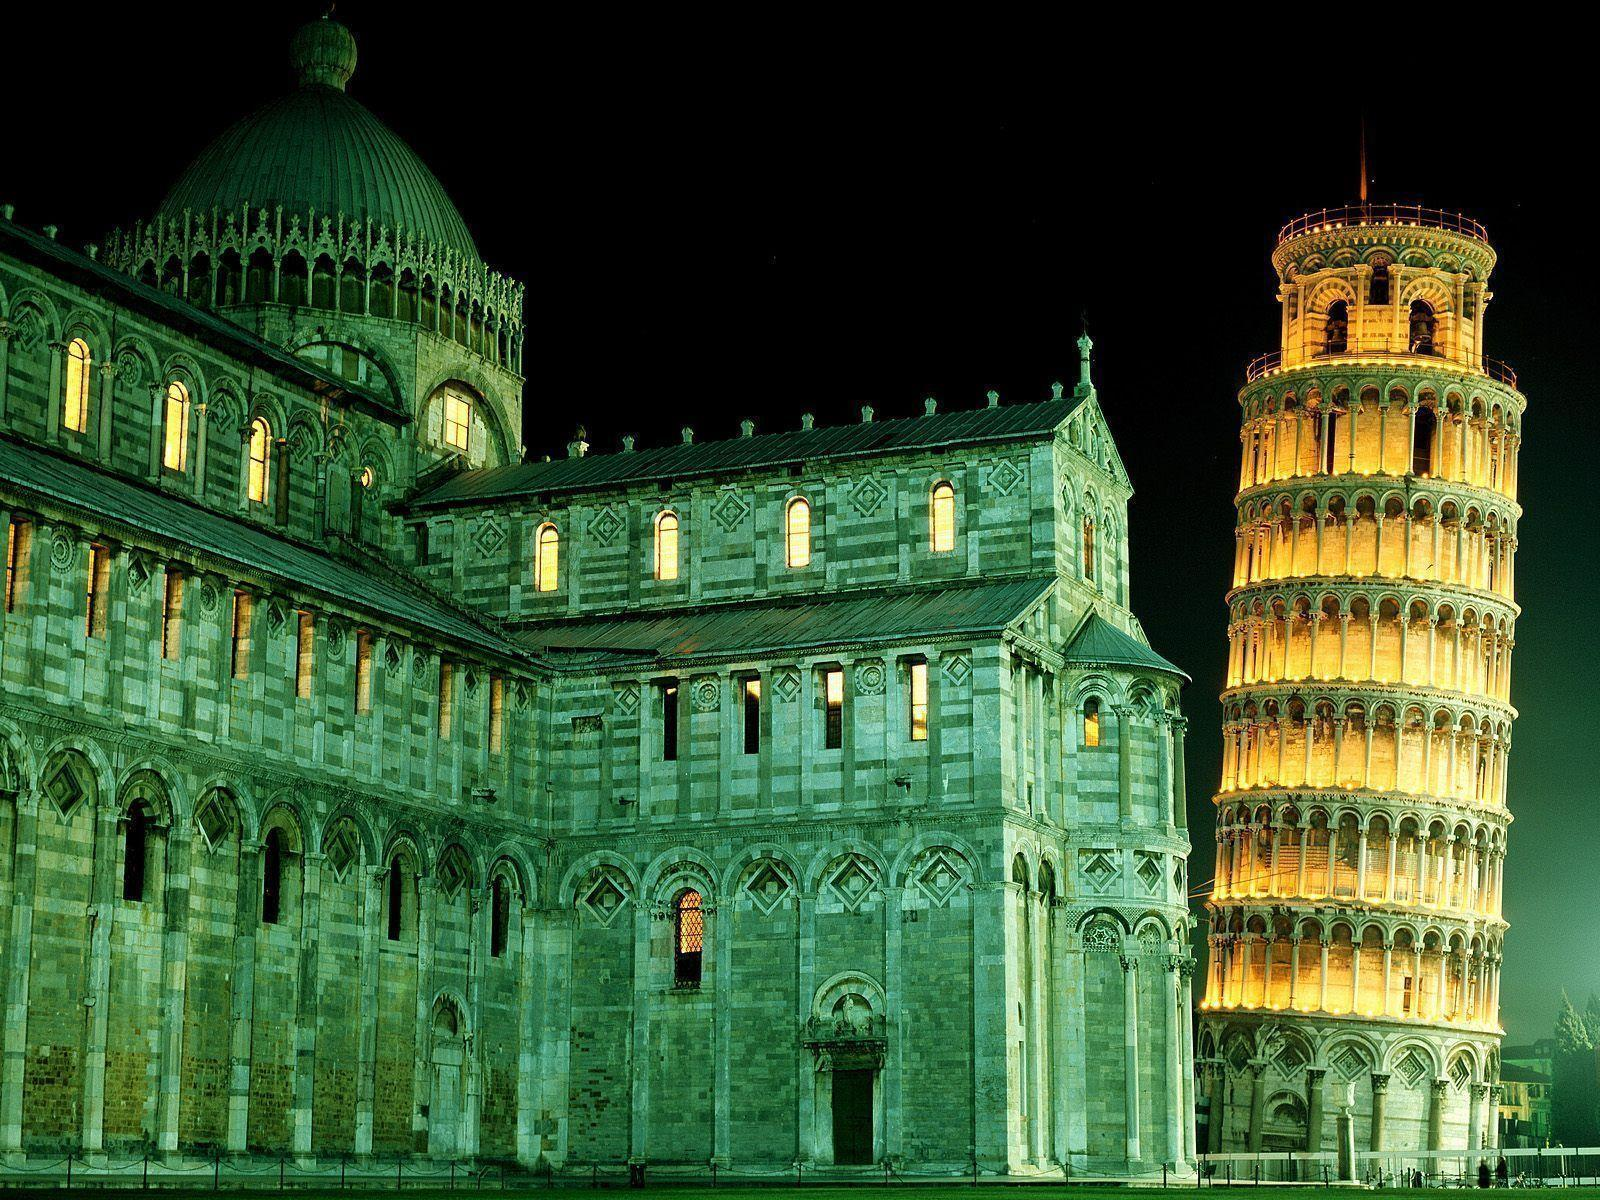 Leaning Tower in Pisa (Italy) / 1600 x 1200 / Locality ...